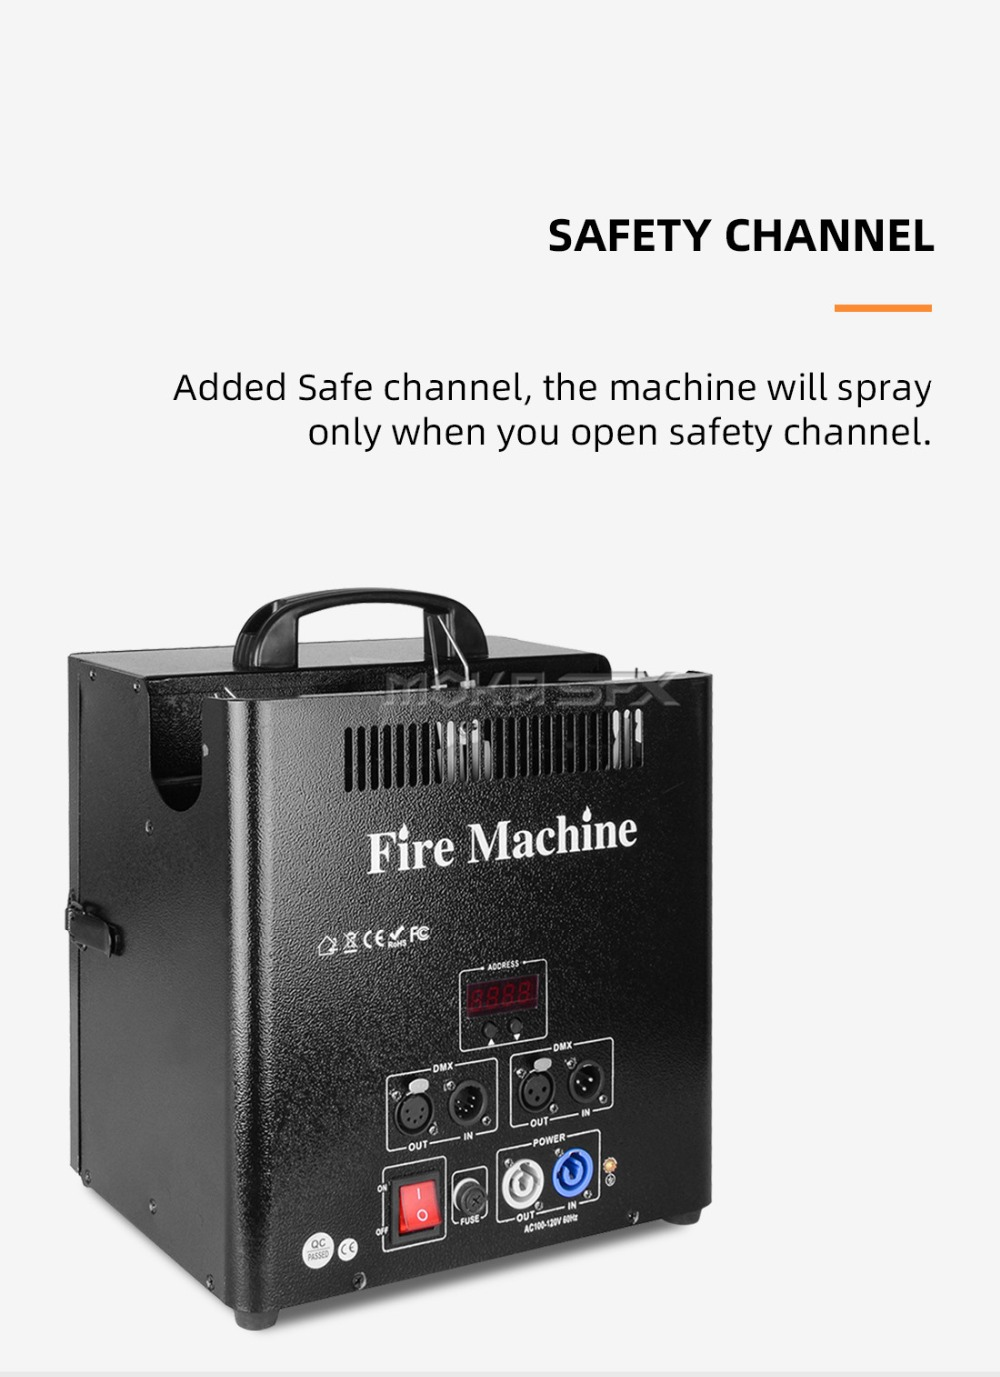 fire machine_07